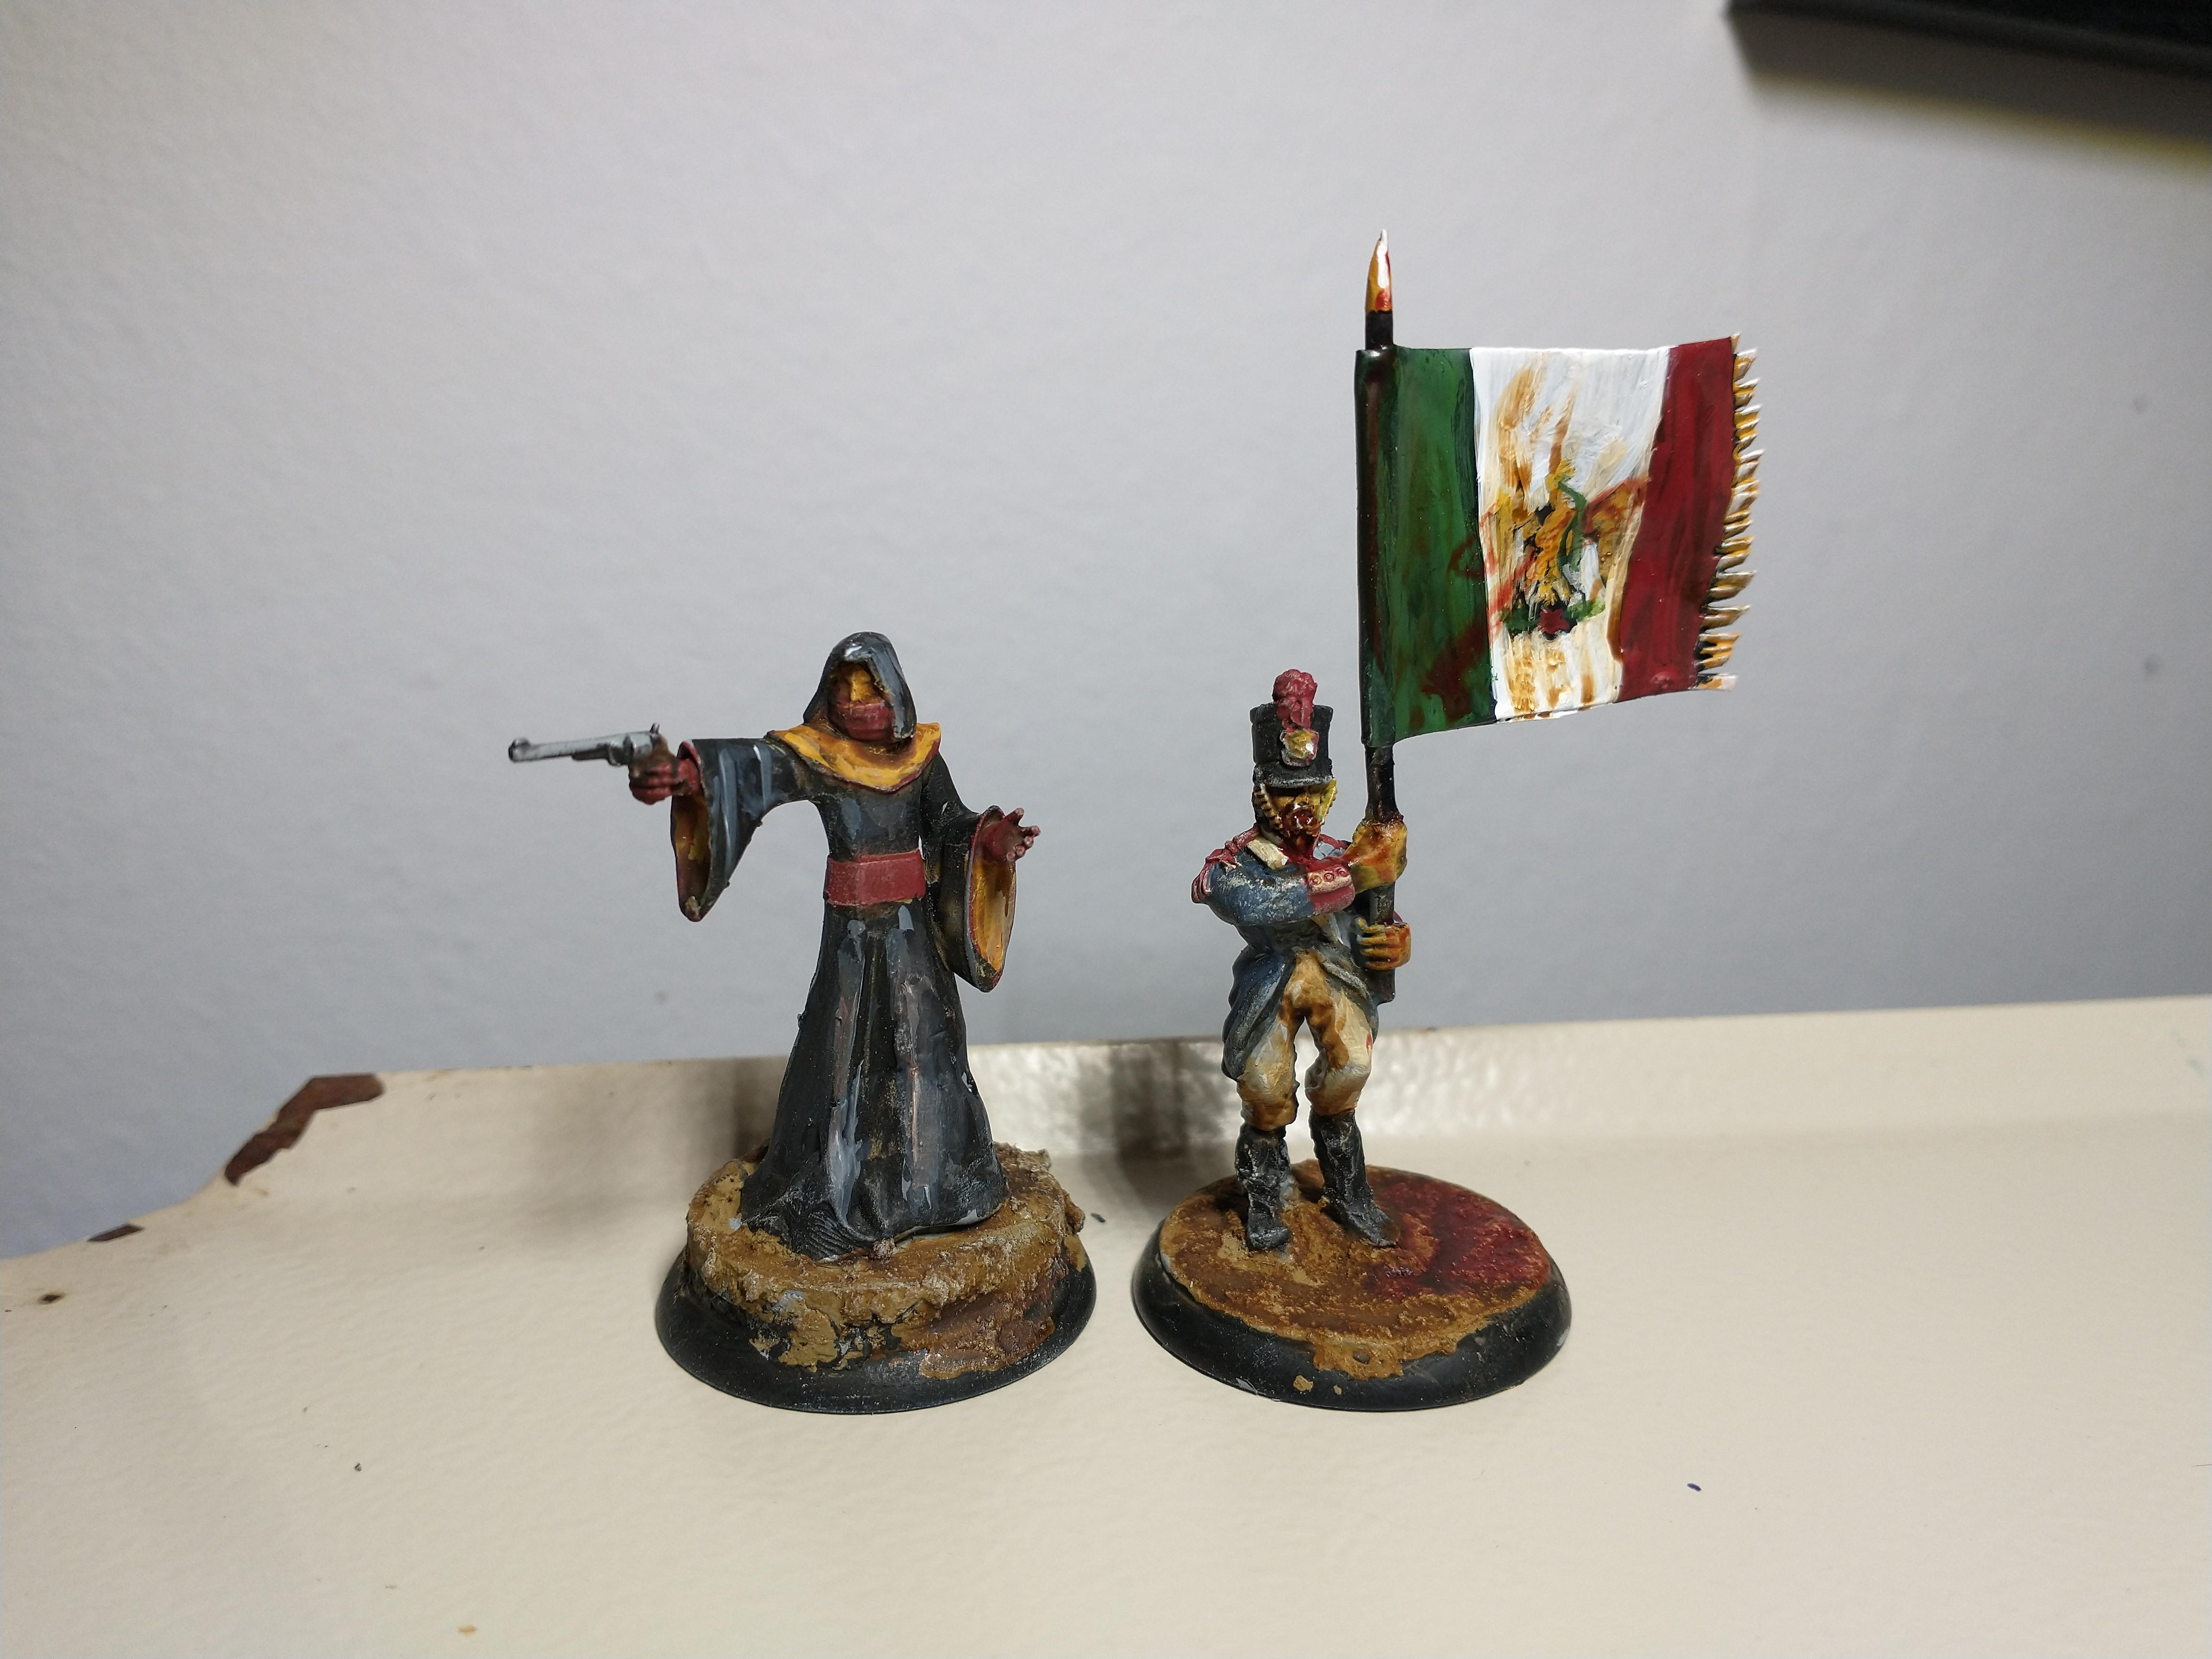 Inquisitor and Zombie Mexican